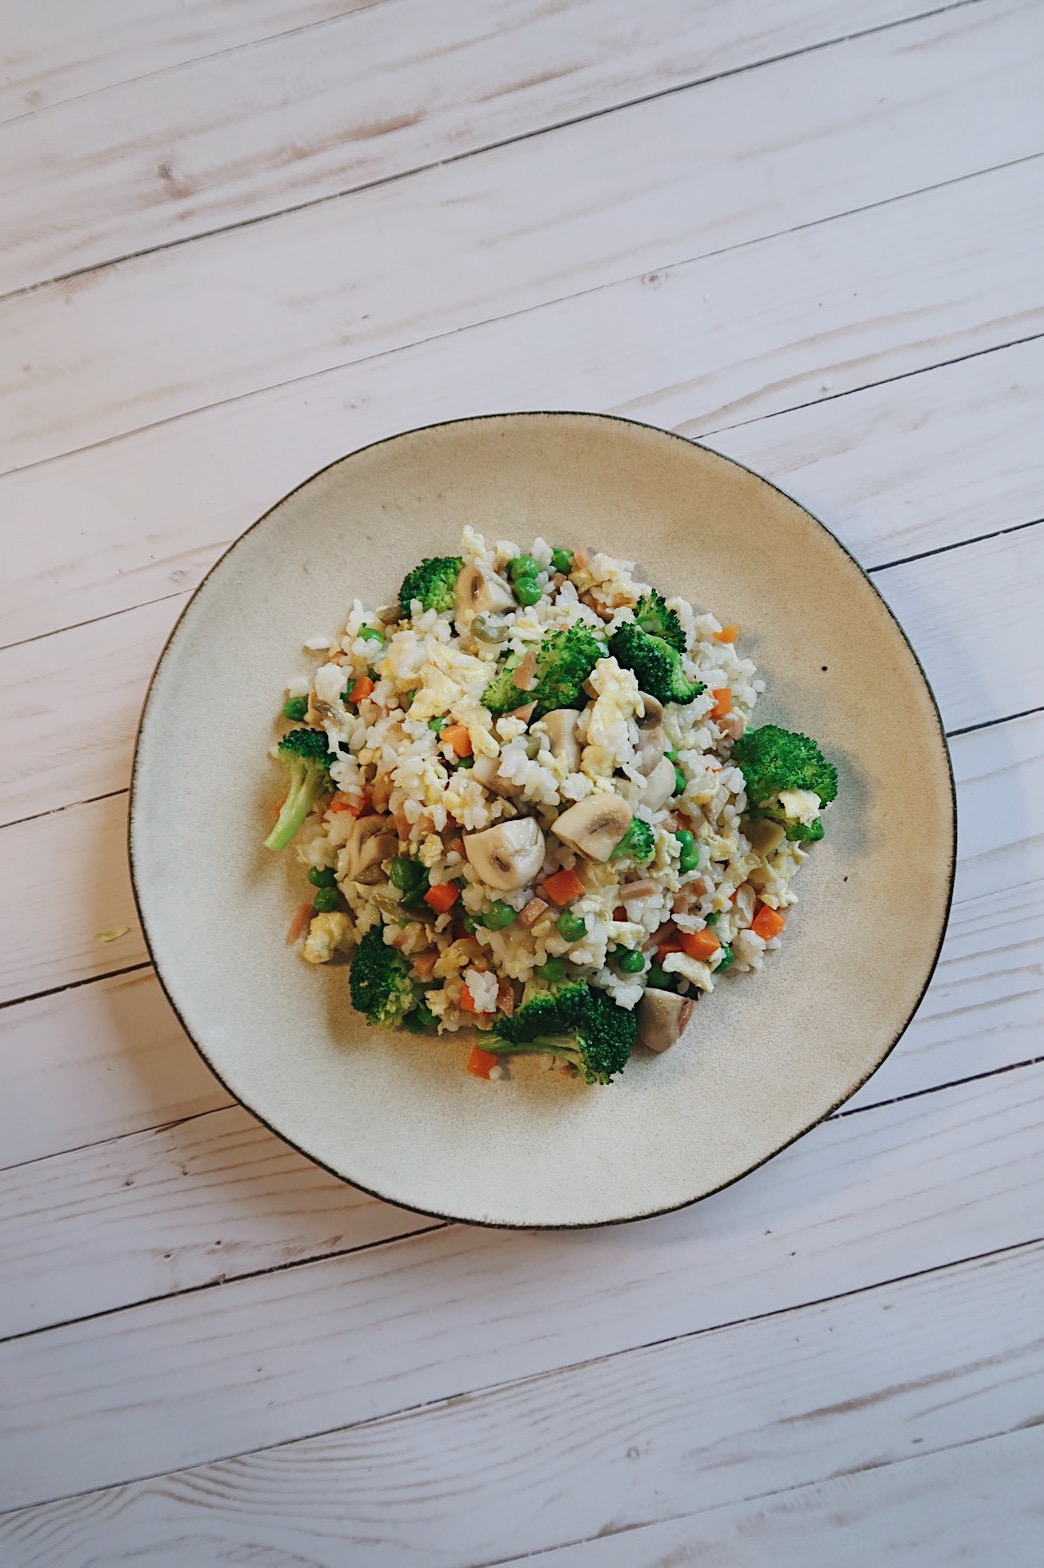 A plate with veggie fried rice